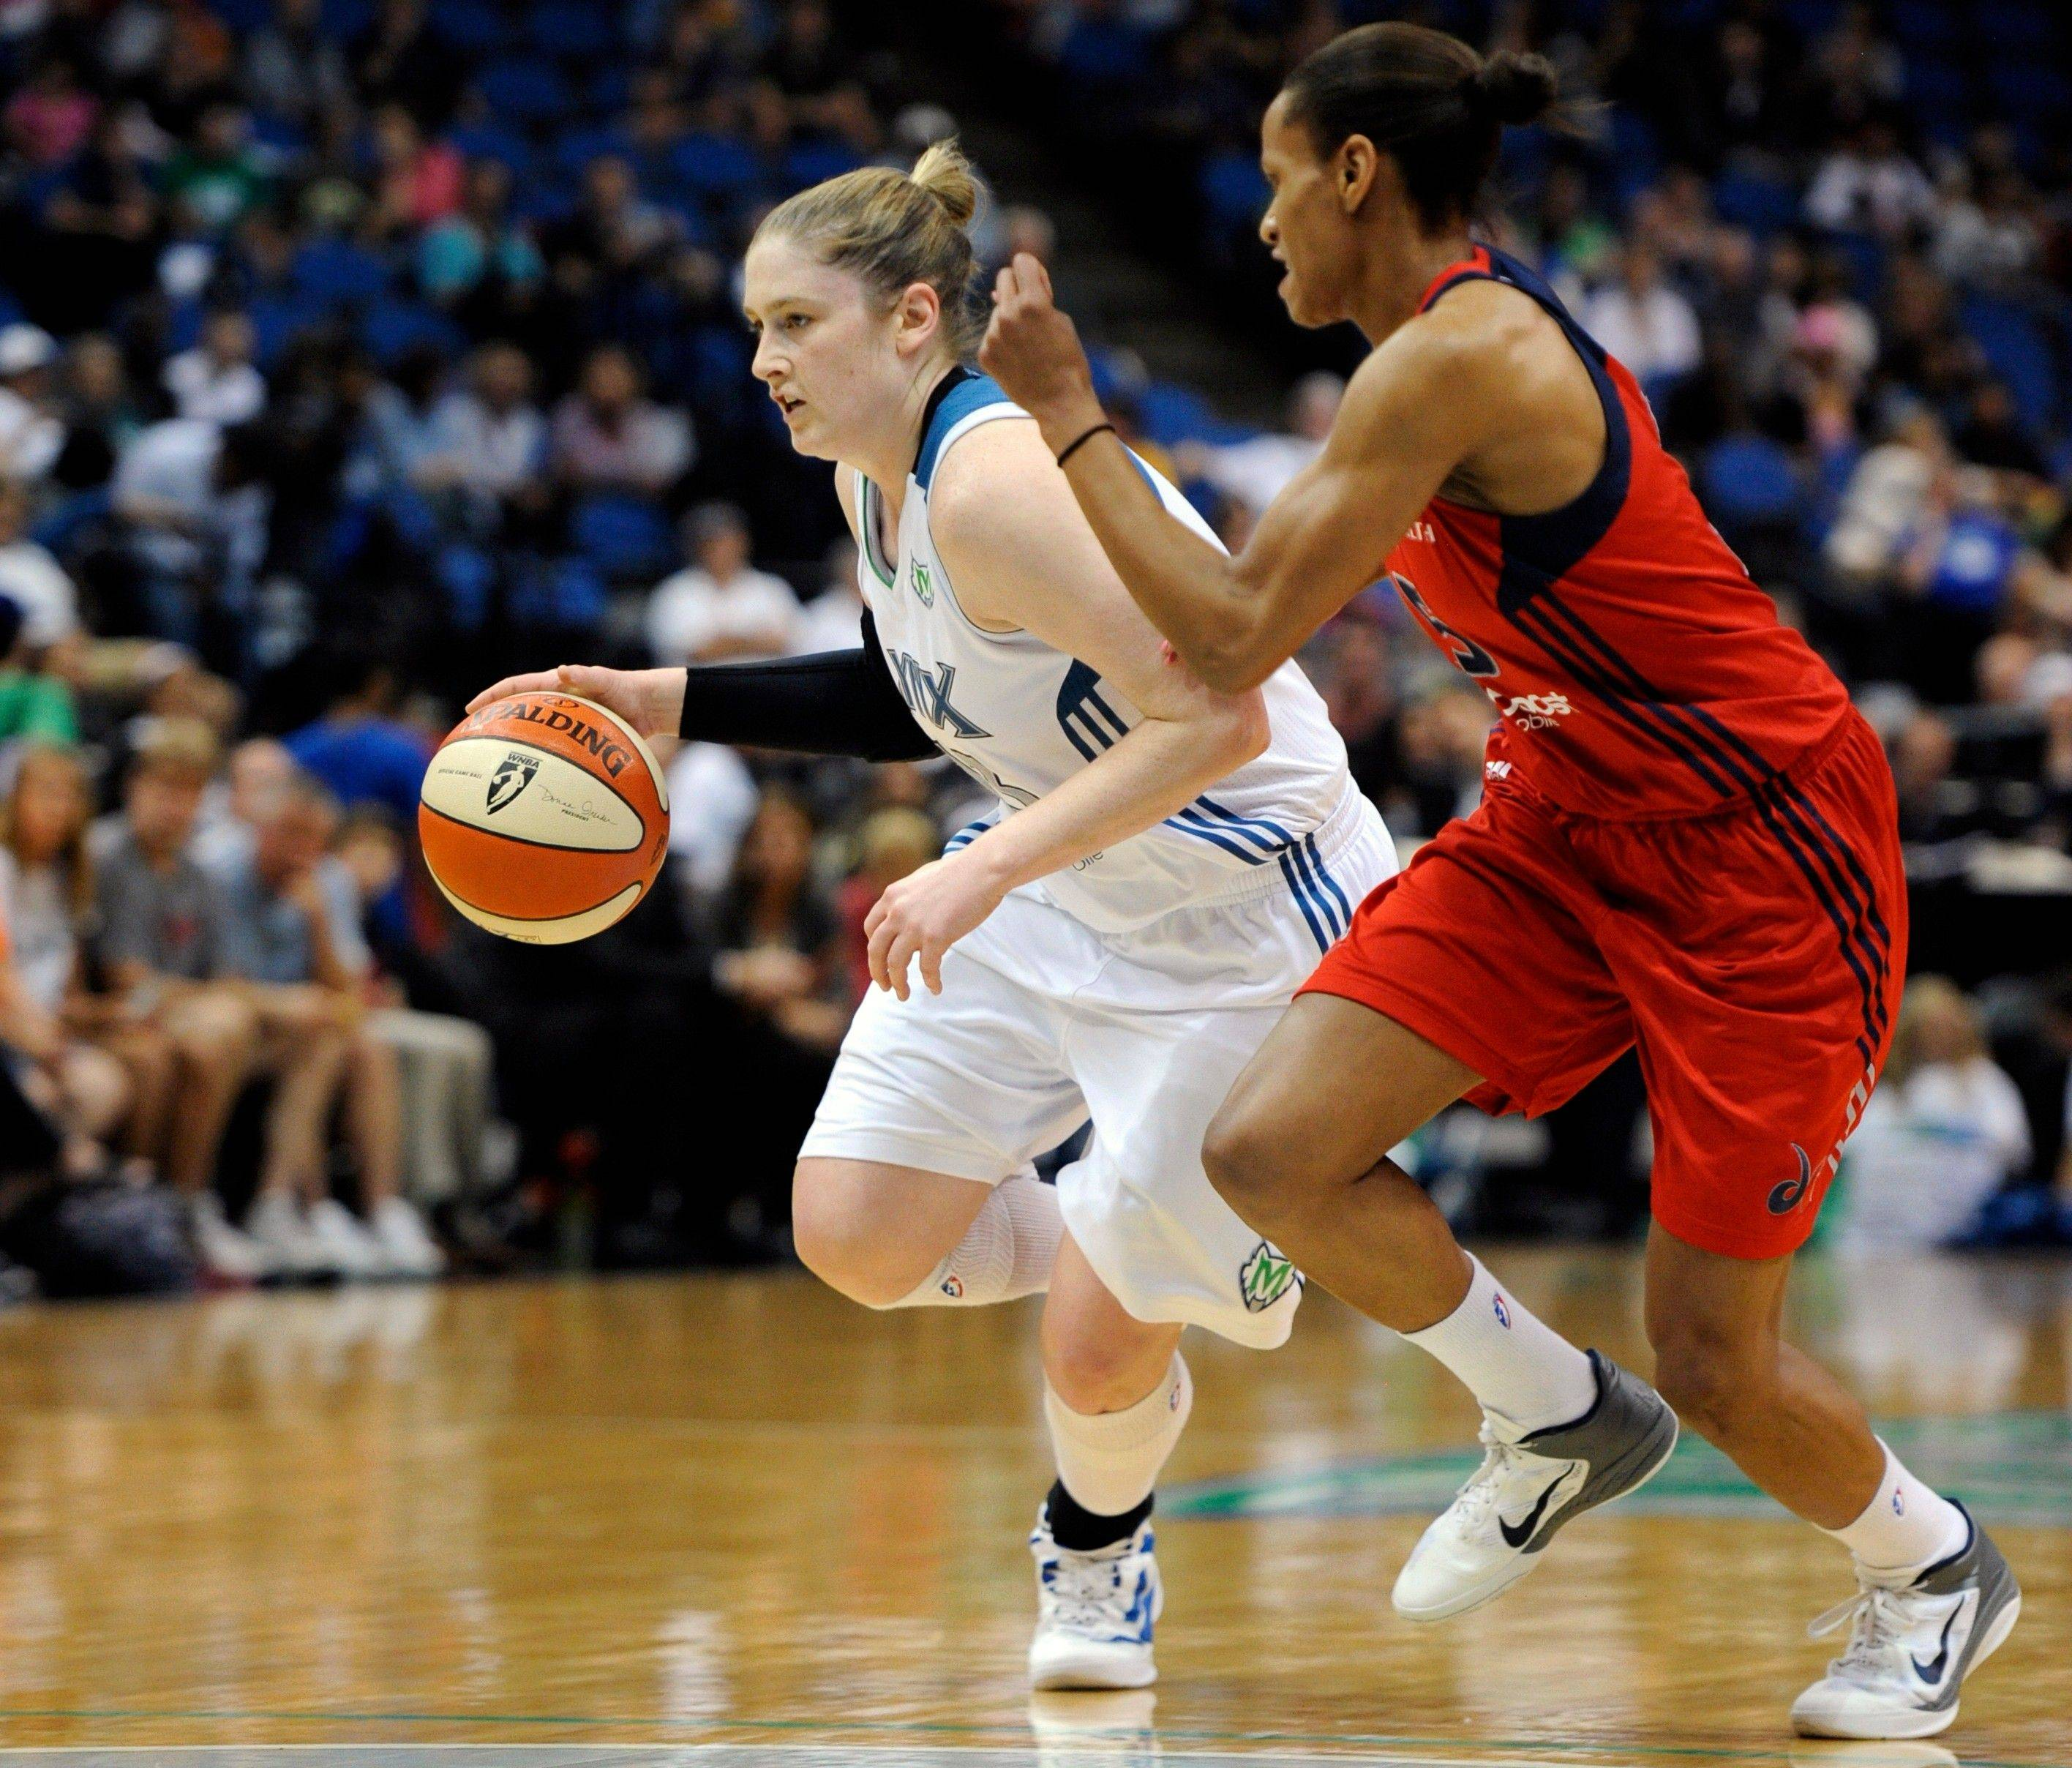 Minnesota Lynx's Lindsay Whalen (13) dribbles against Washington Mystics' Jasmine Thomas (5) during the first quarter of a WNBA basketball game in Minneapolis on Tuesday.